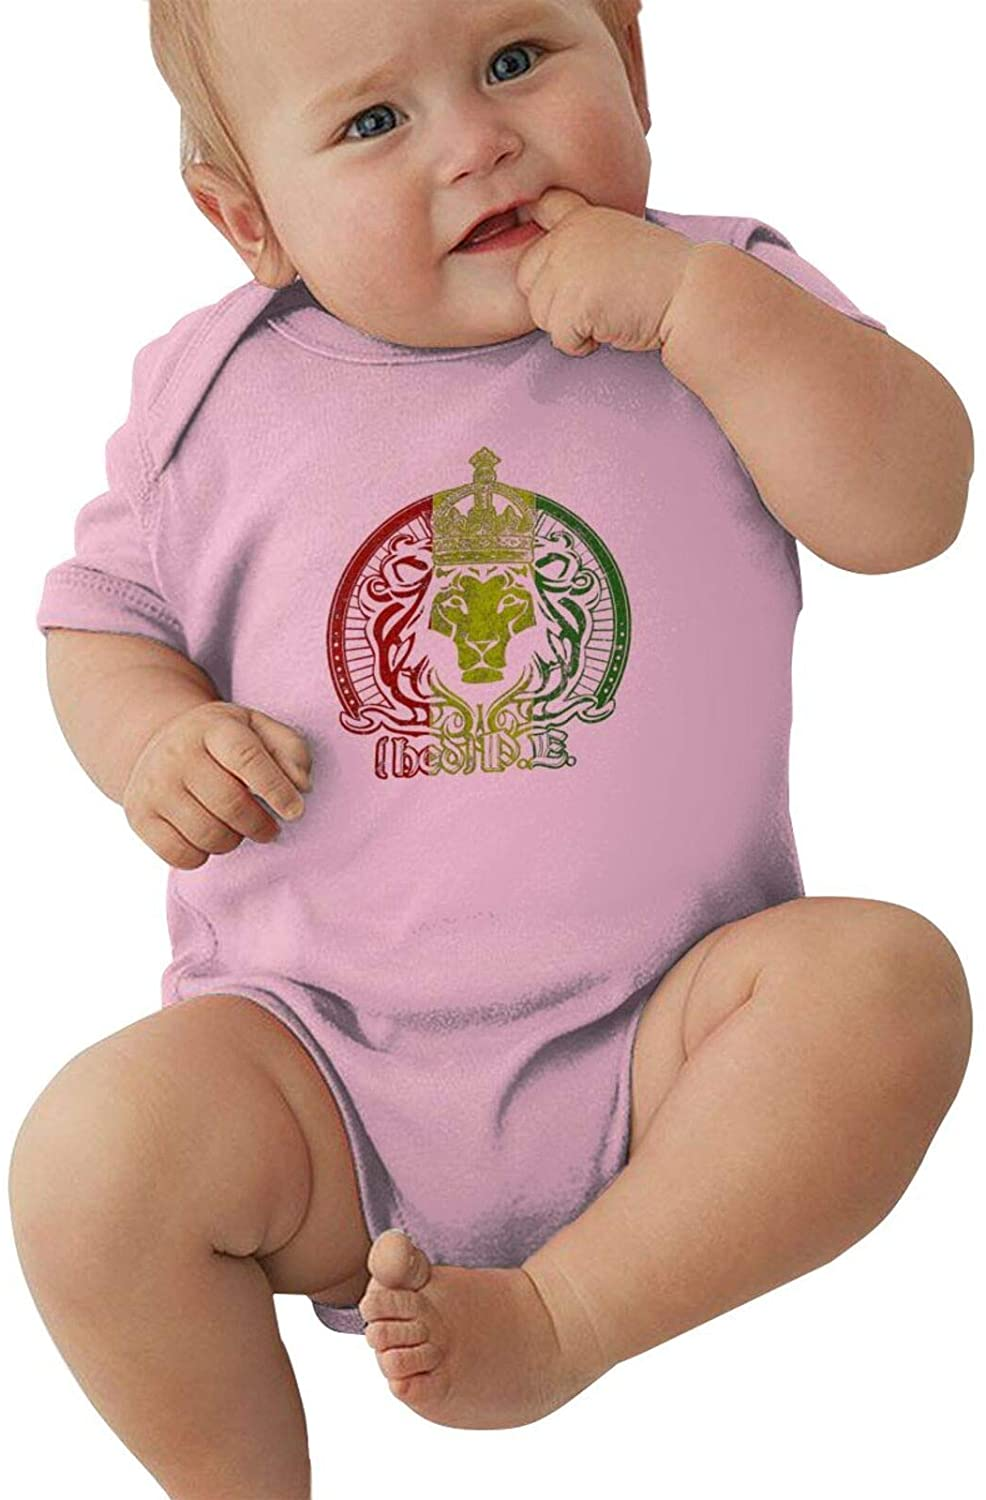 NYF Unisex Baby Bodysuits Infant Bodysuits Jumpsuit Newborn Romper Outfit for Boy Girls Pink